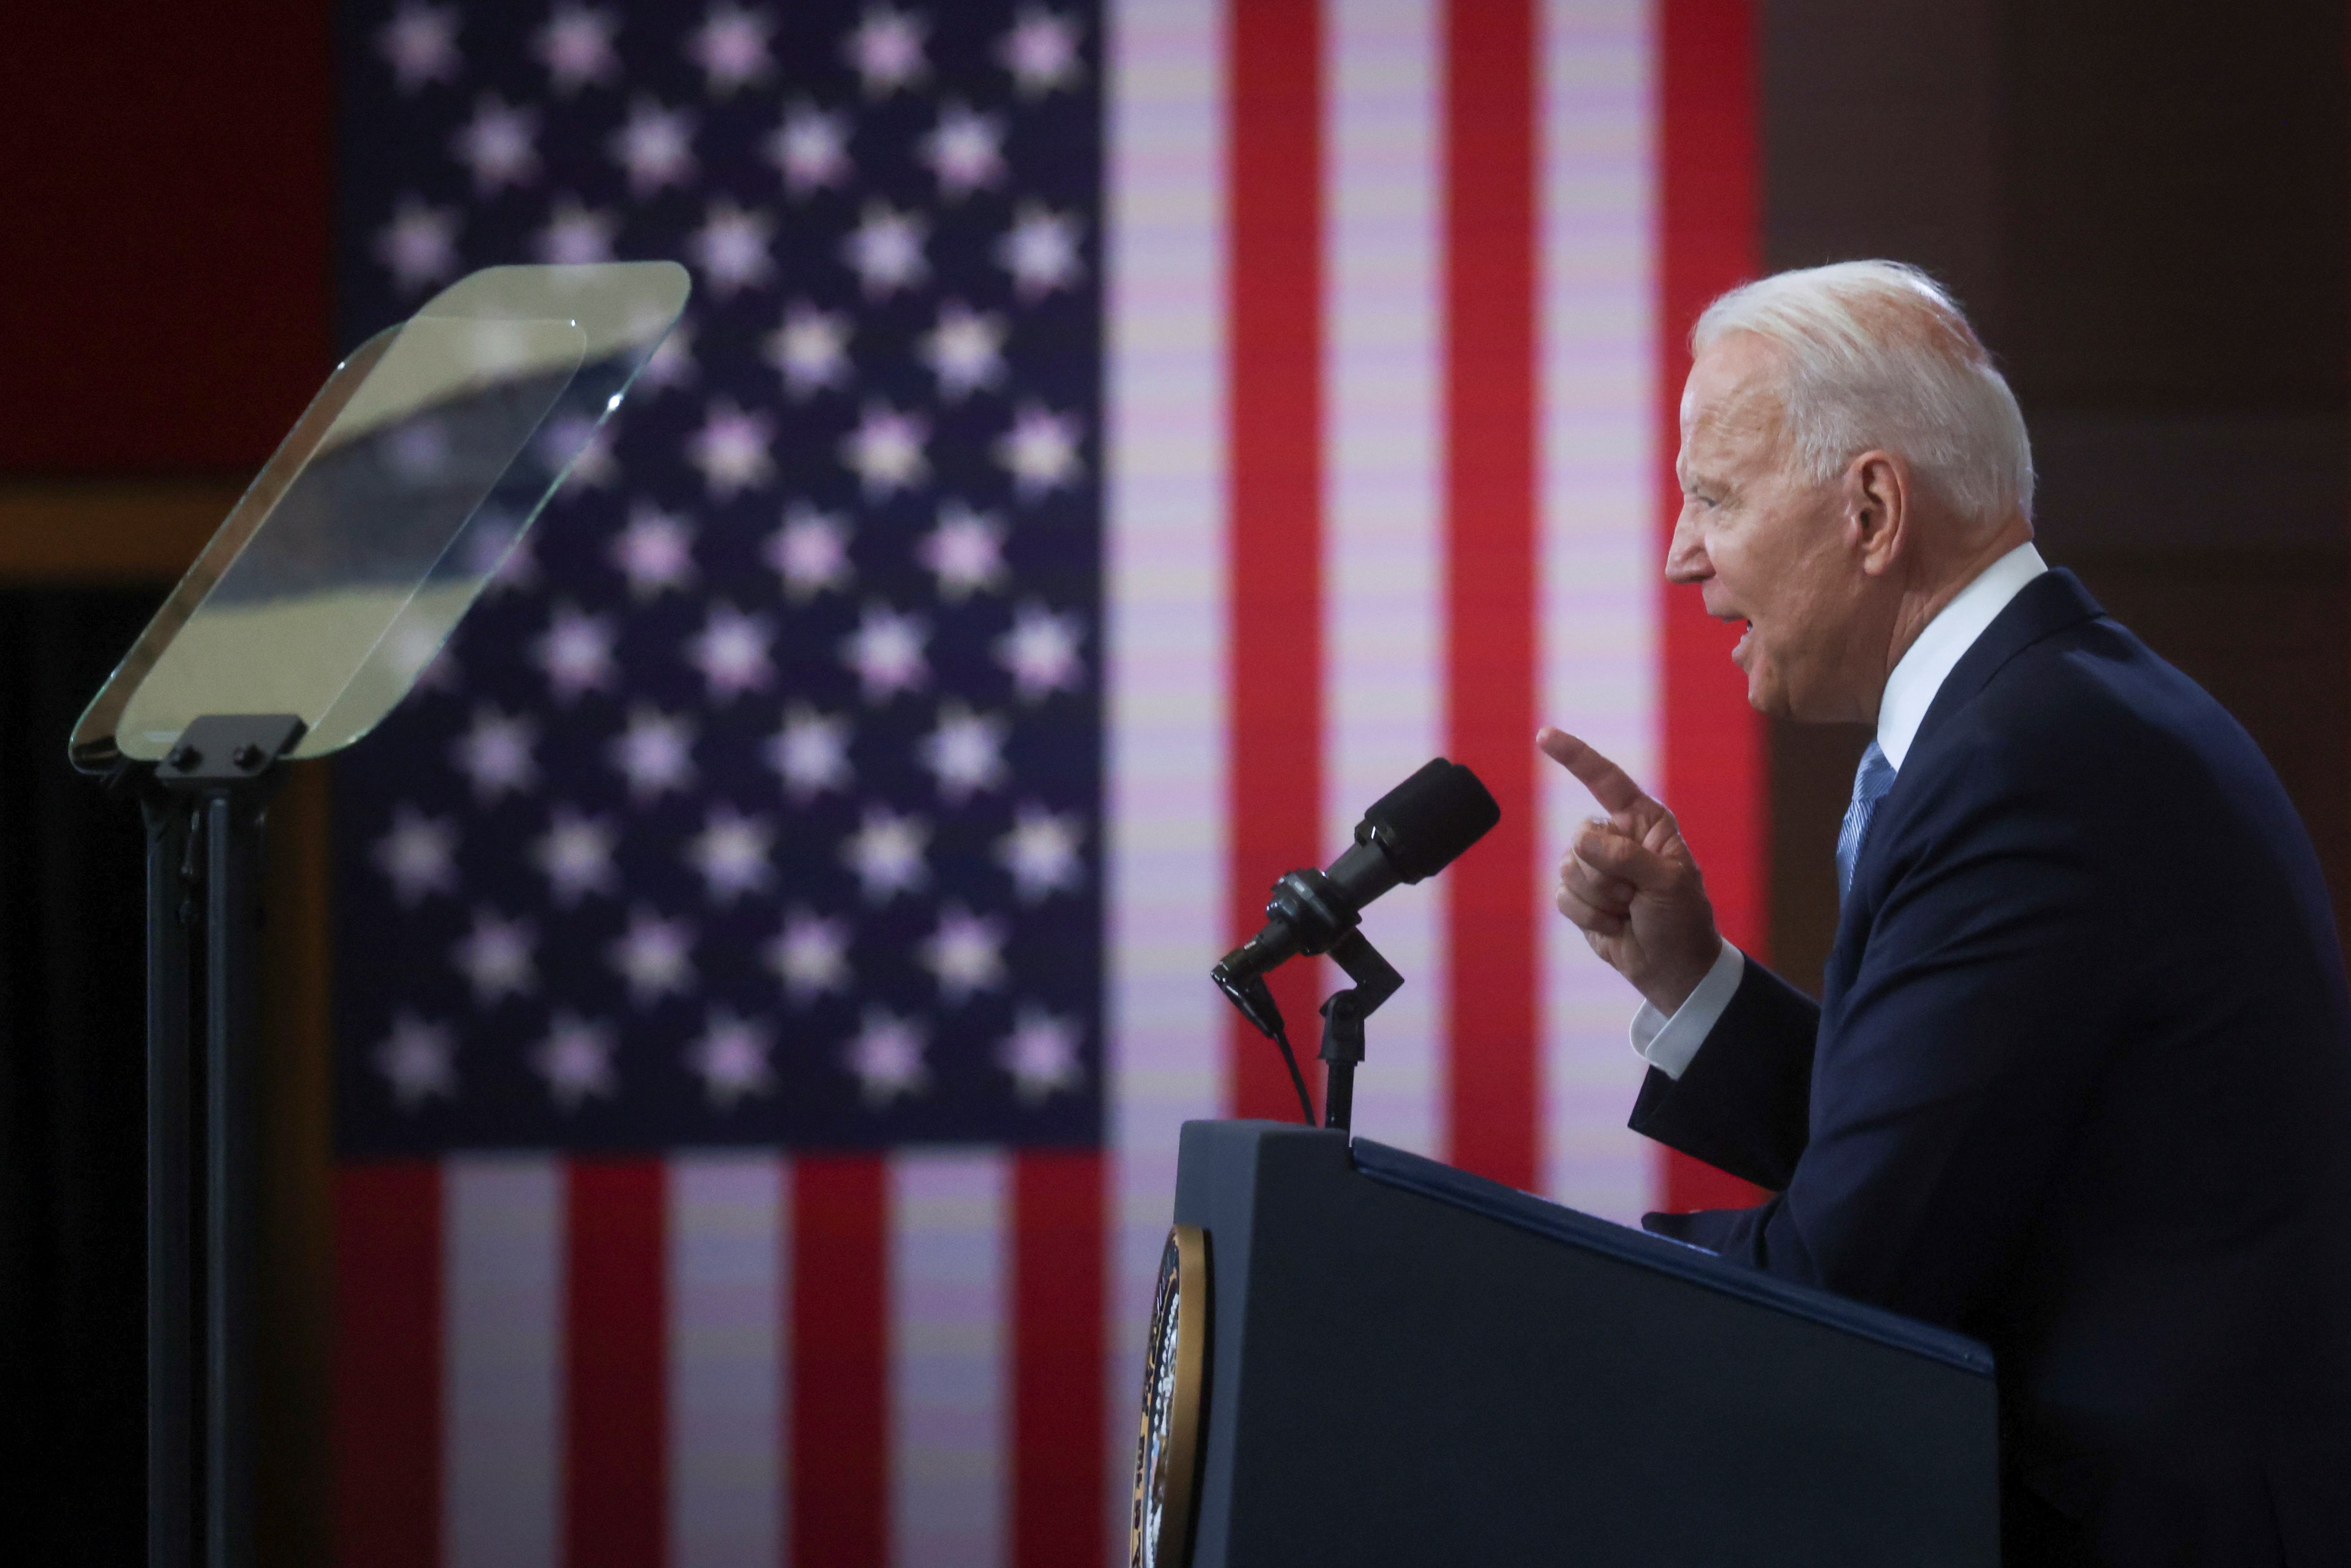 U.S. President Joe Biden delivers remarks on actions to protect voting rights in a speech at National Constitution Center in Philadelphia, Pennsylvania, U.S., July 13, 2021. REUTERS/Leah Millis